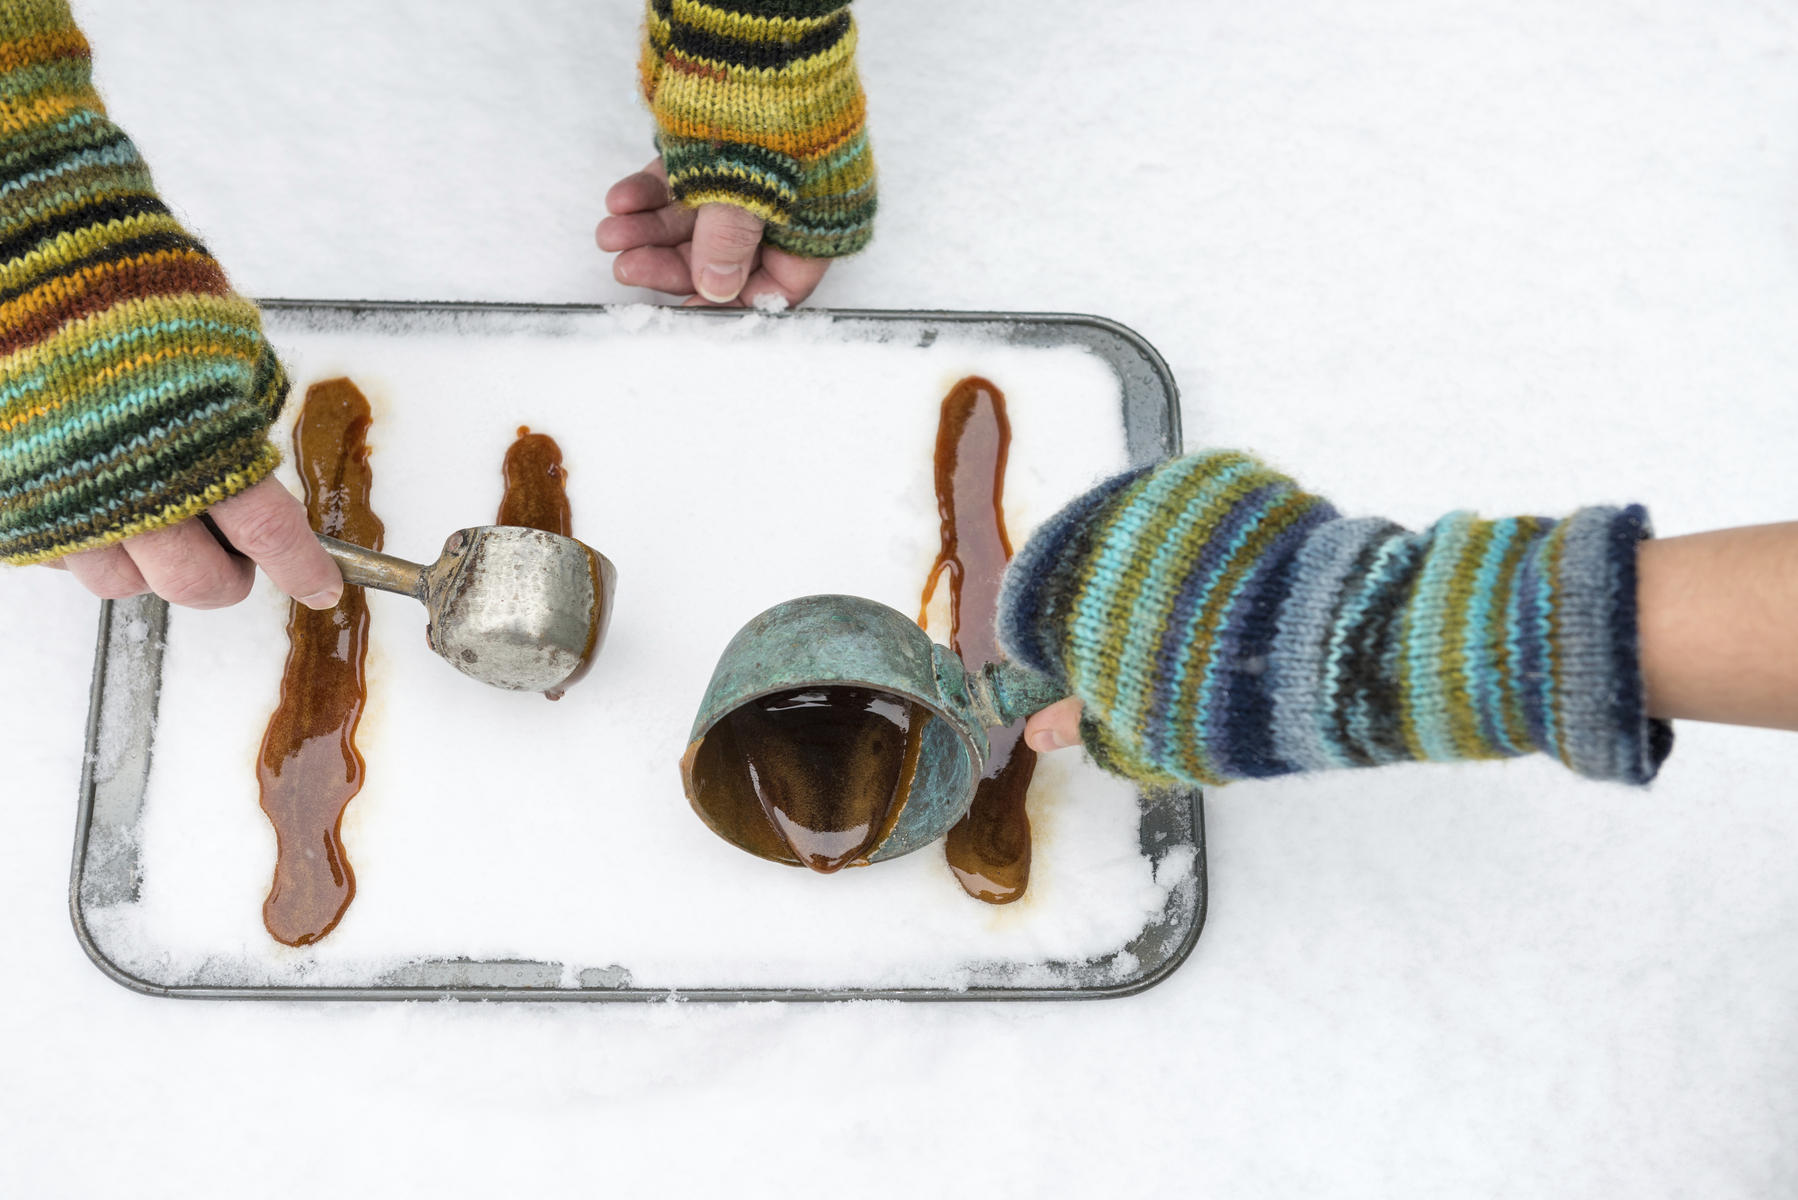 Two People Making Maple Syrup Taffy in Snow